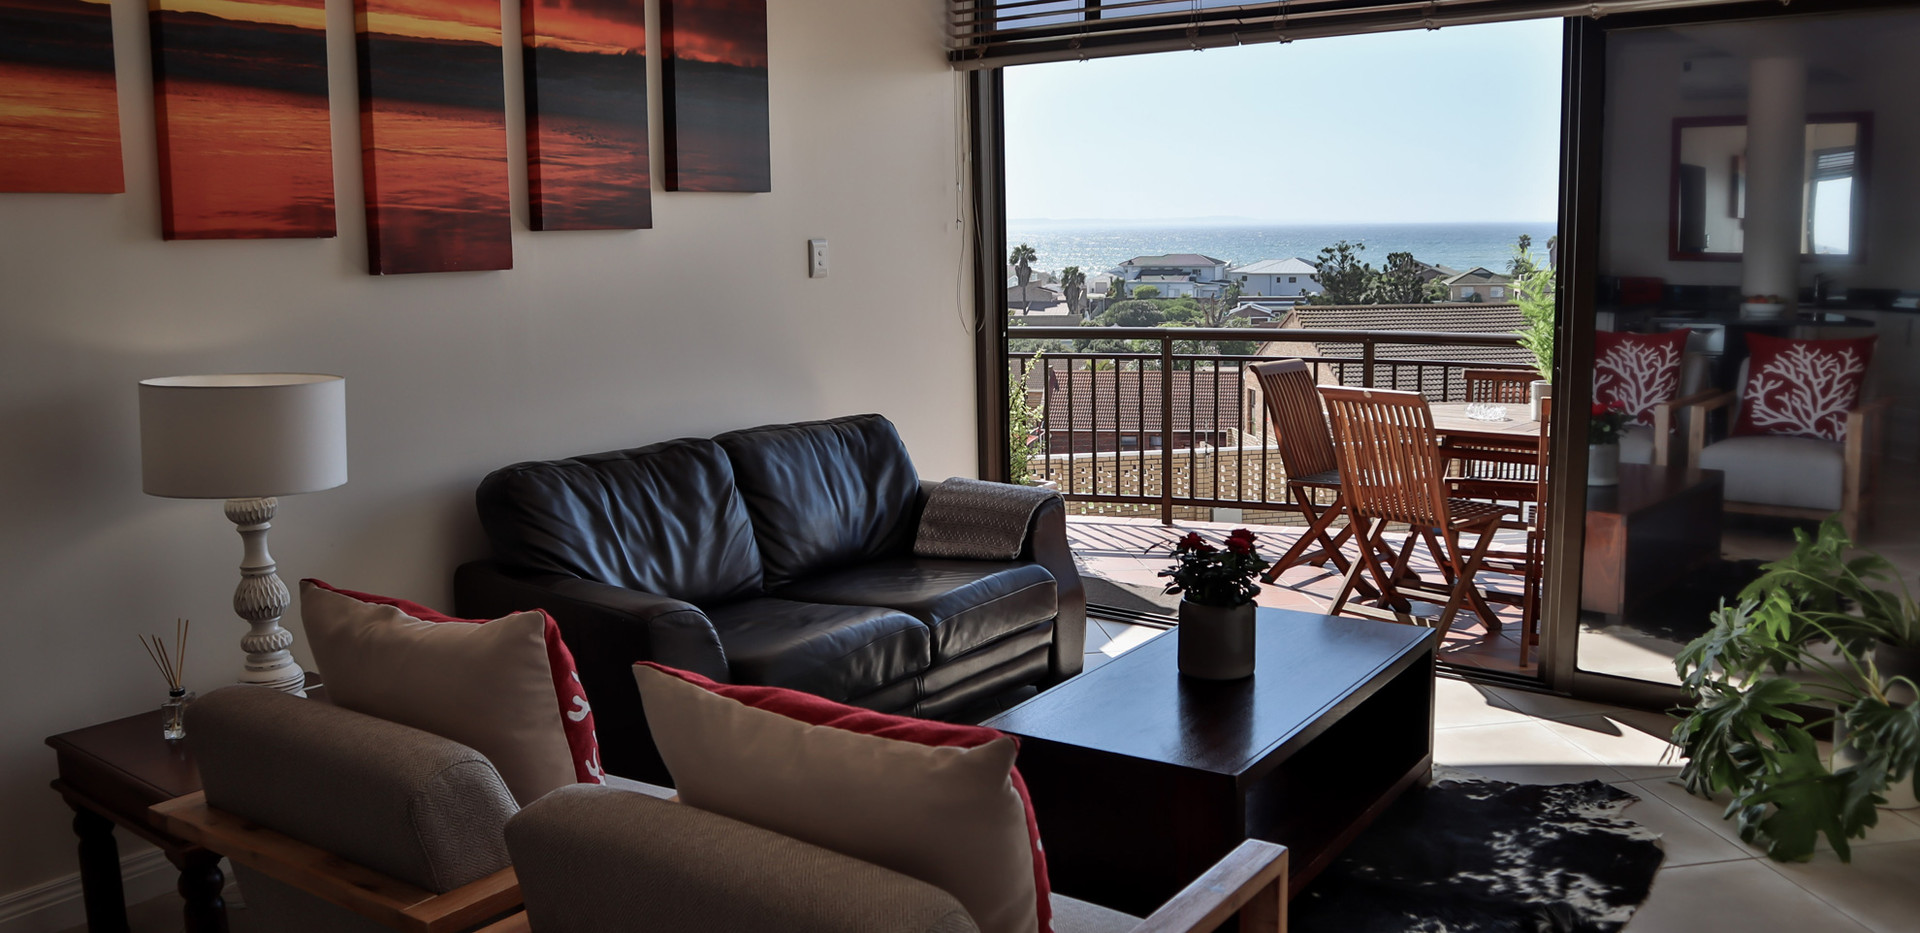 UNIT6_lounge-with-a-view.jpg